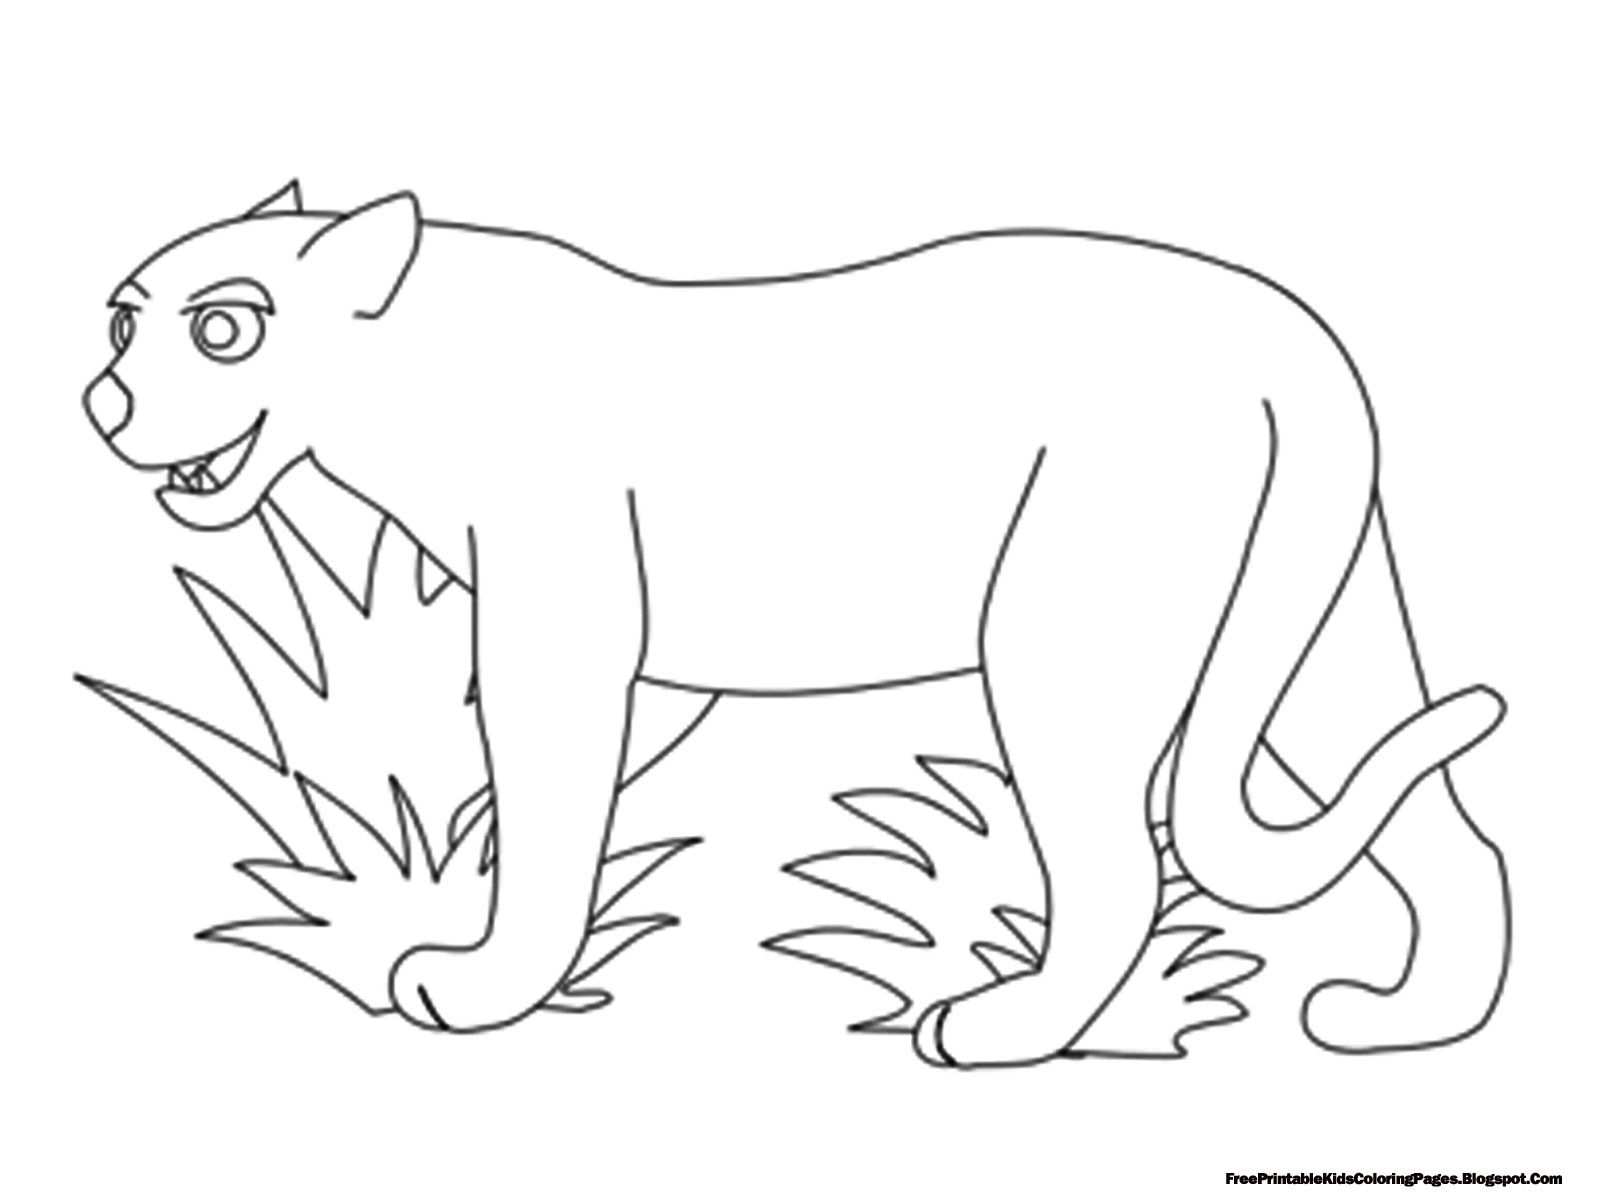 jaguar outline free printable kids coloring pages free printable